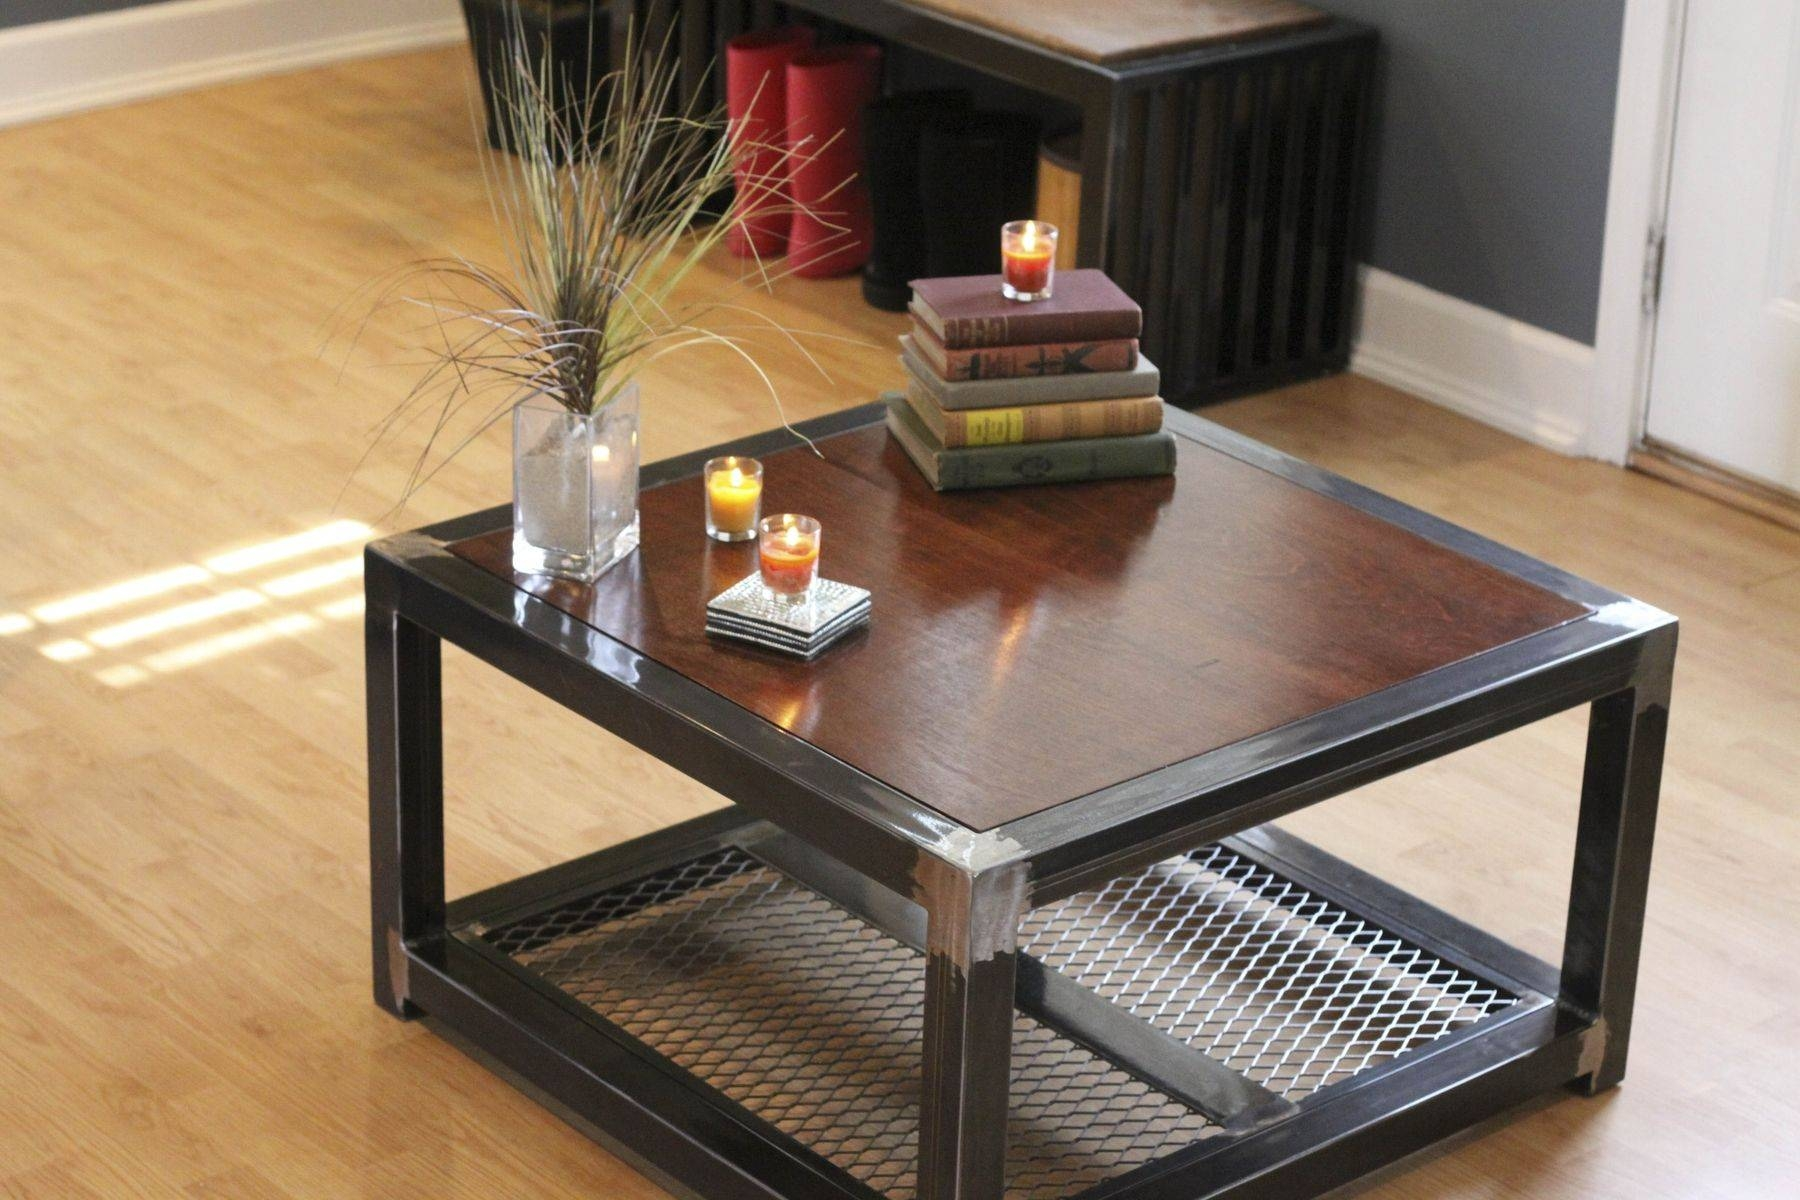 Hand Made Steel And Wood Coffee Tableindustrial Interiors pertaining to Metal and Wood Coffee Tables (Image 9 of 15)